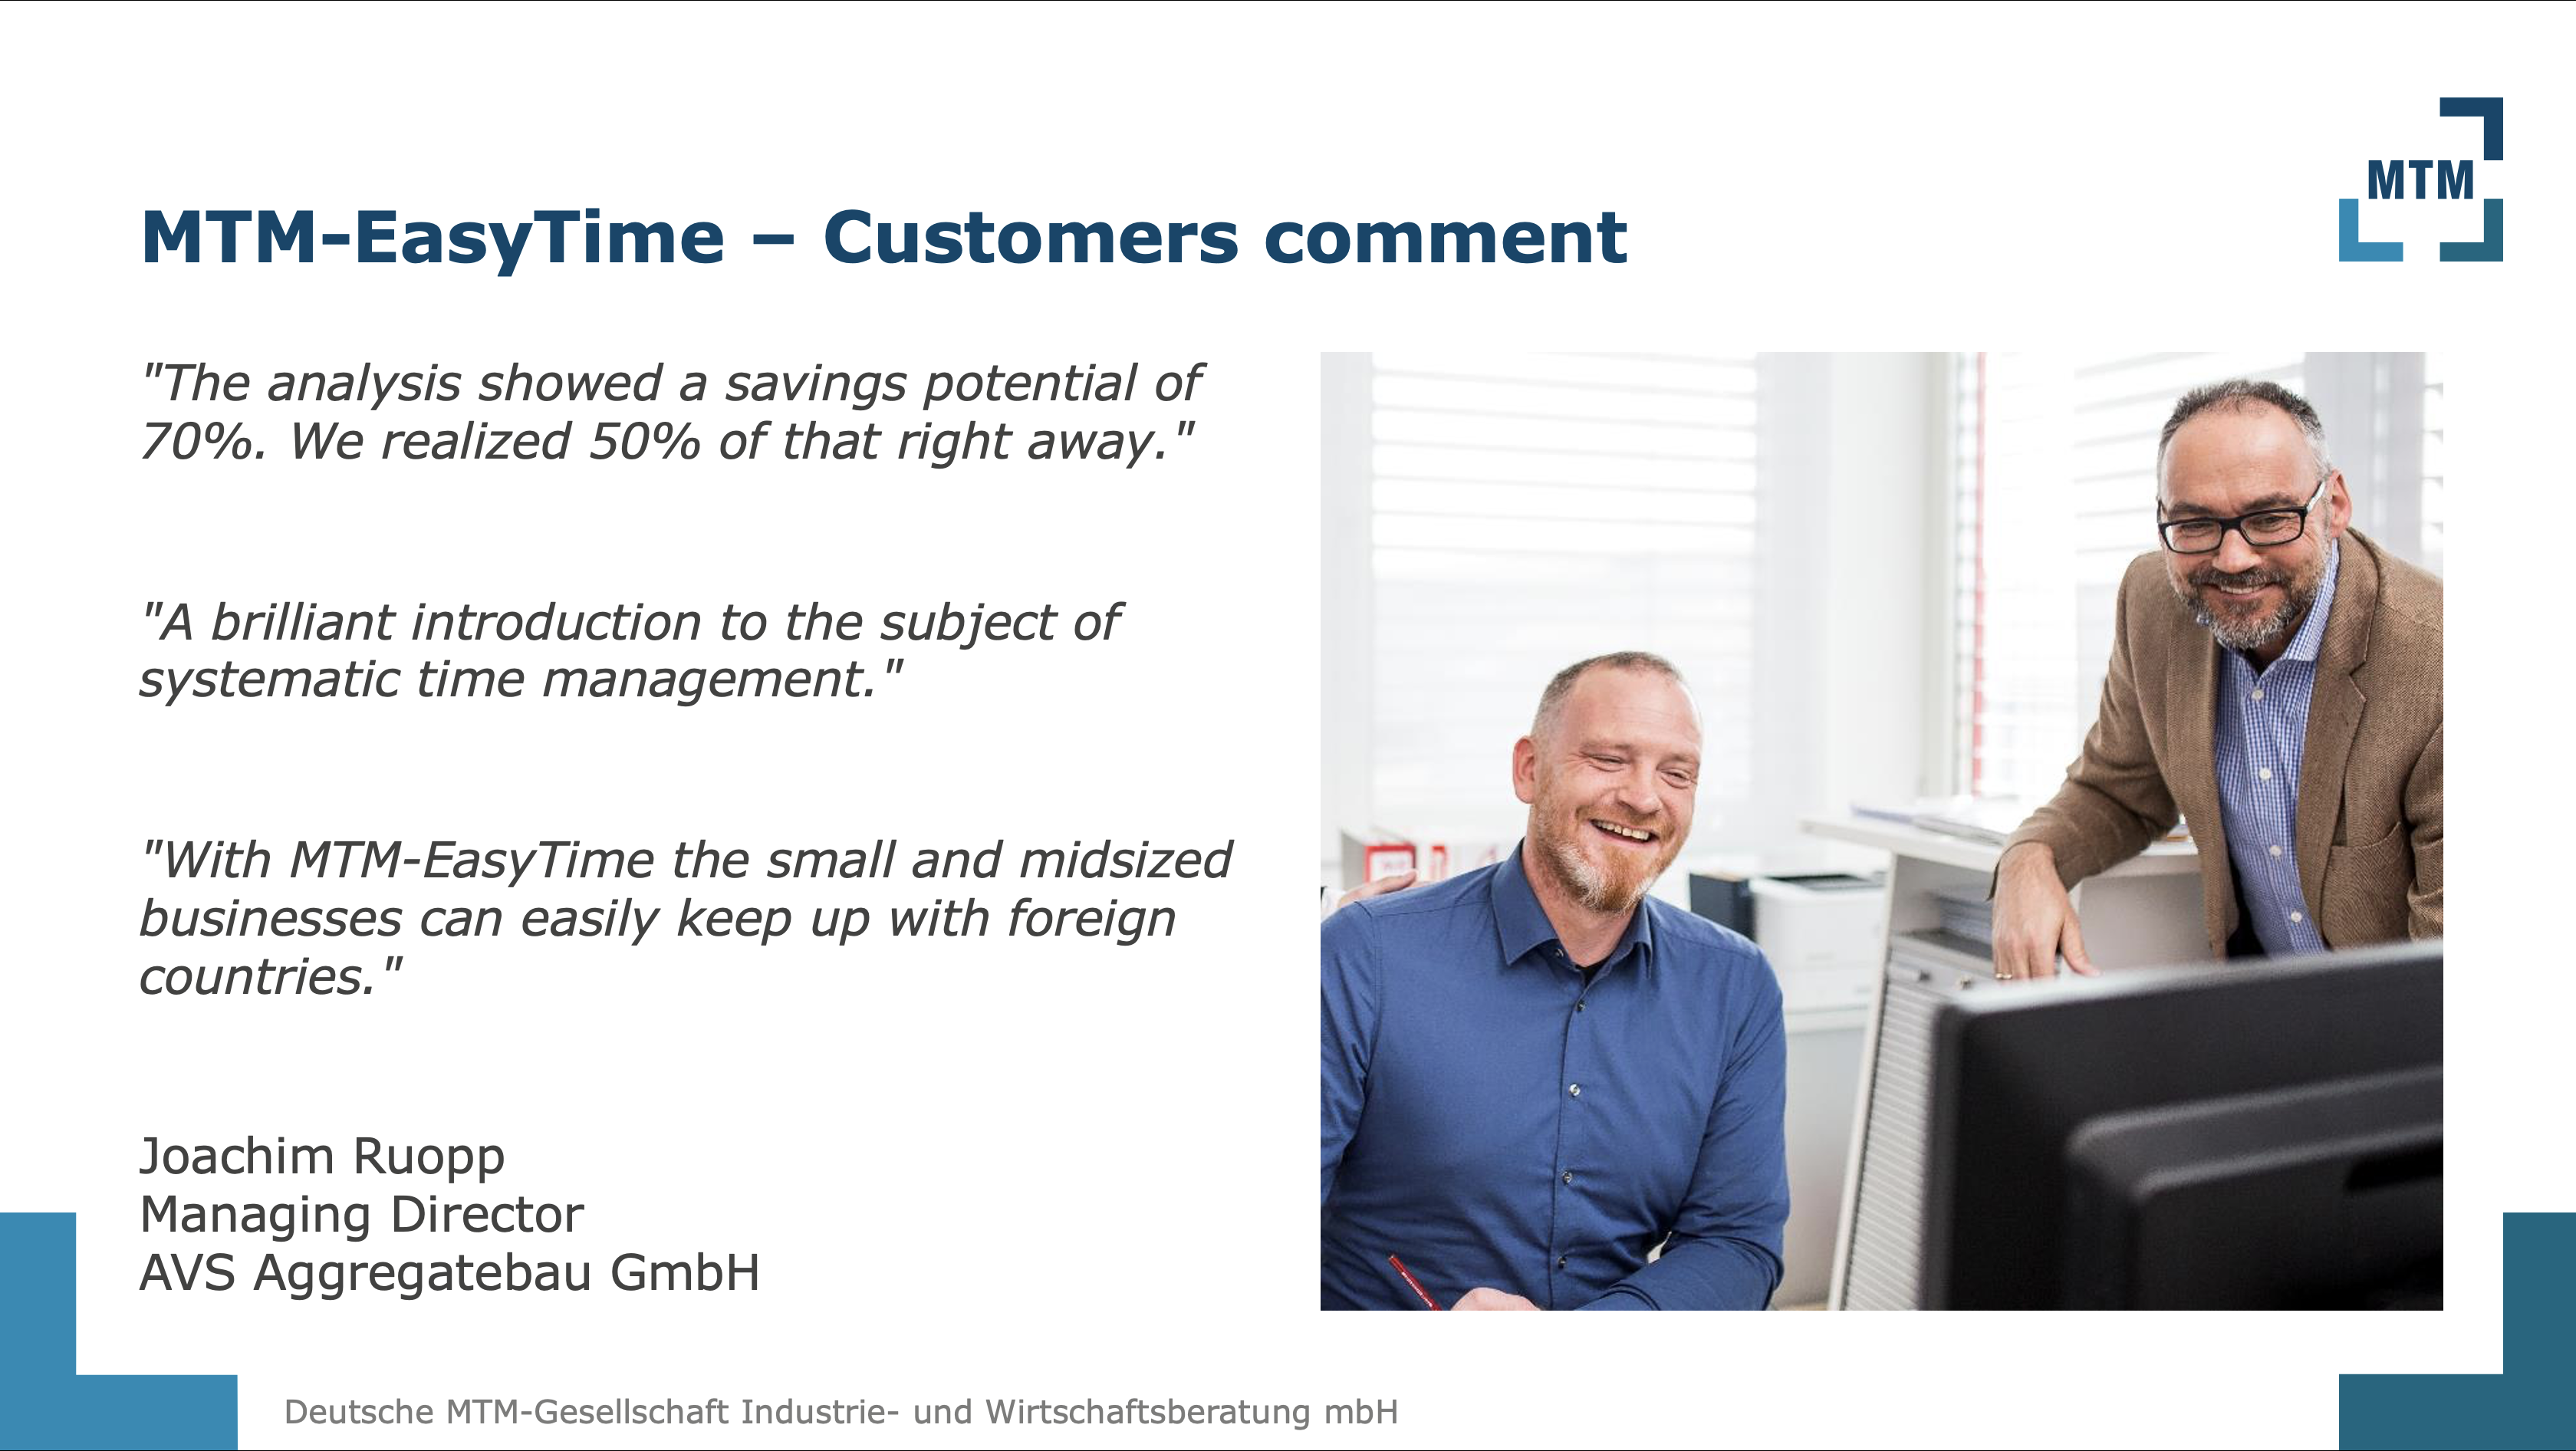 MTM-EasyTime – Customers comment